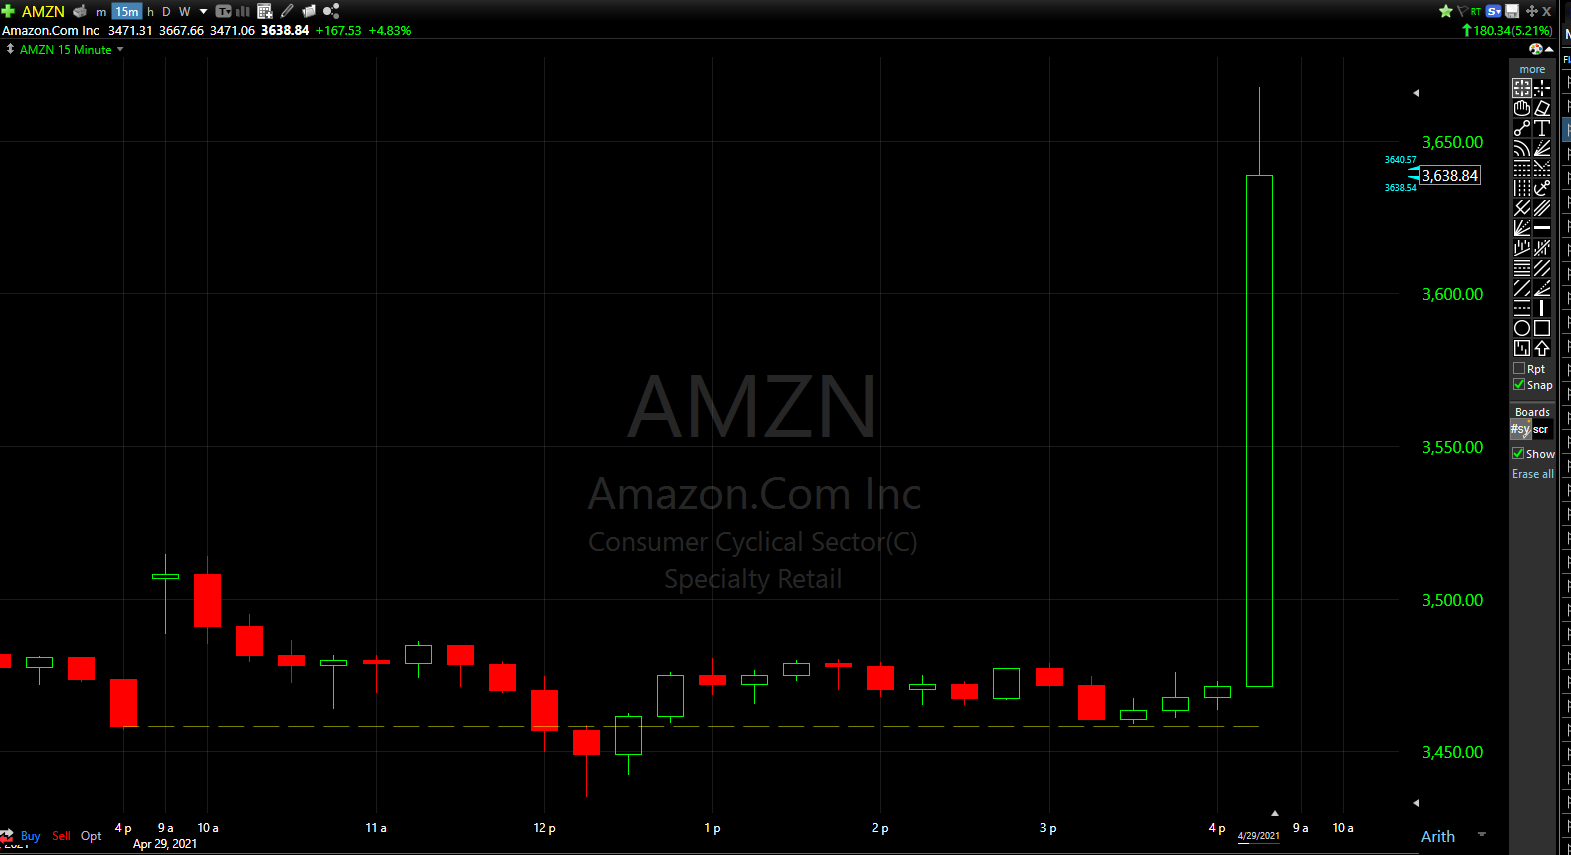 Amazon (AMZN) is up almost 200 bucks in afterhours trading.